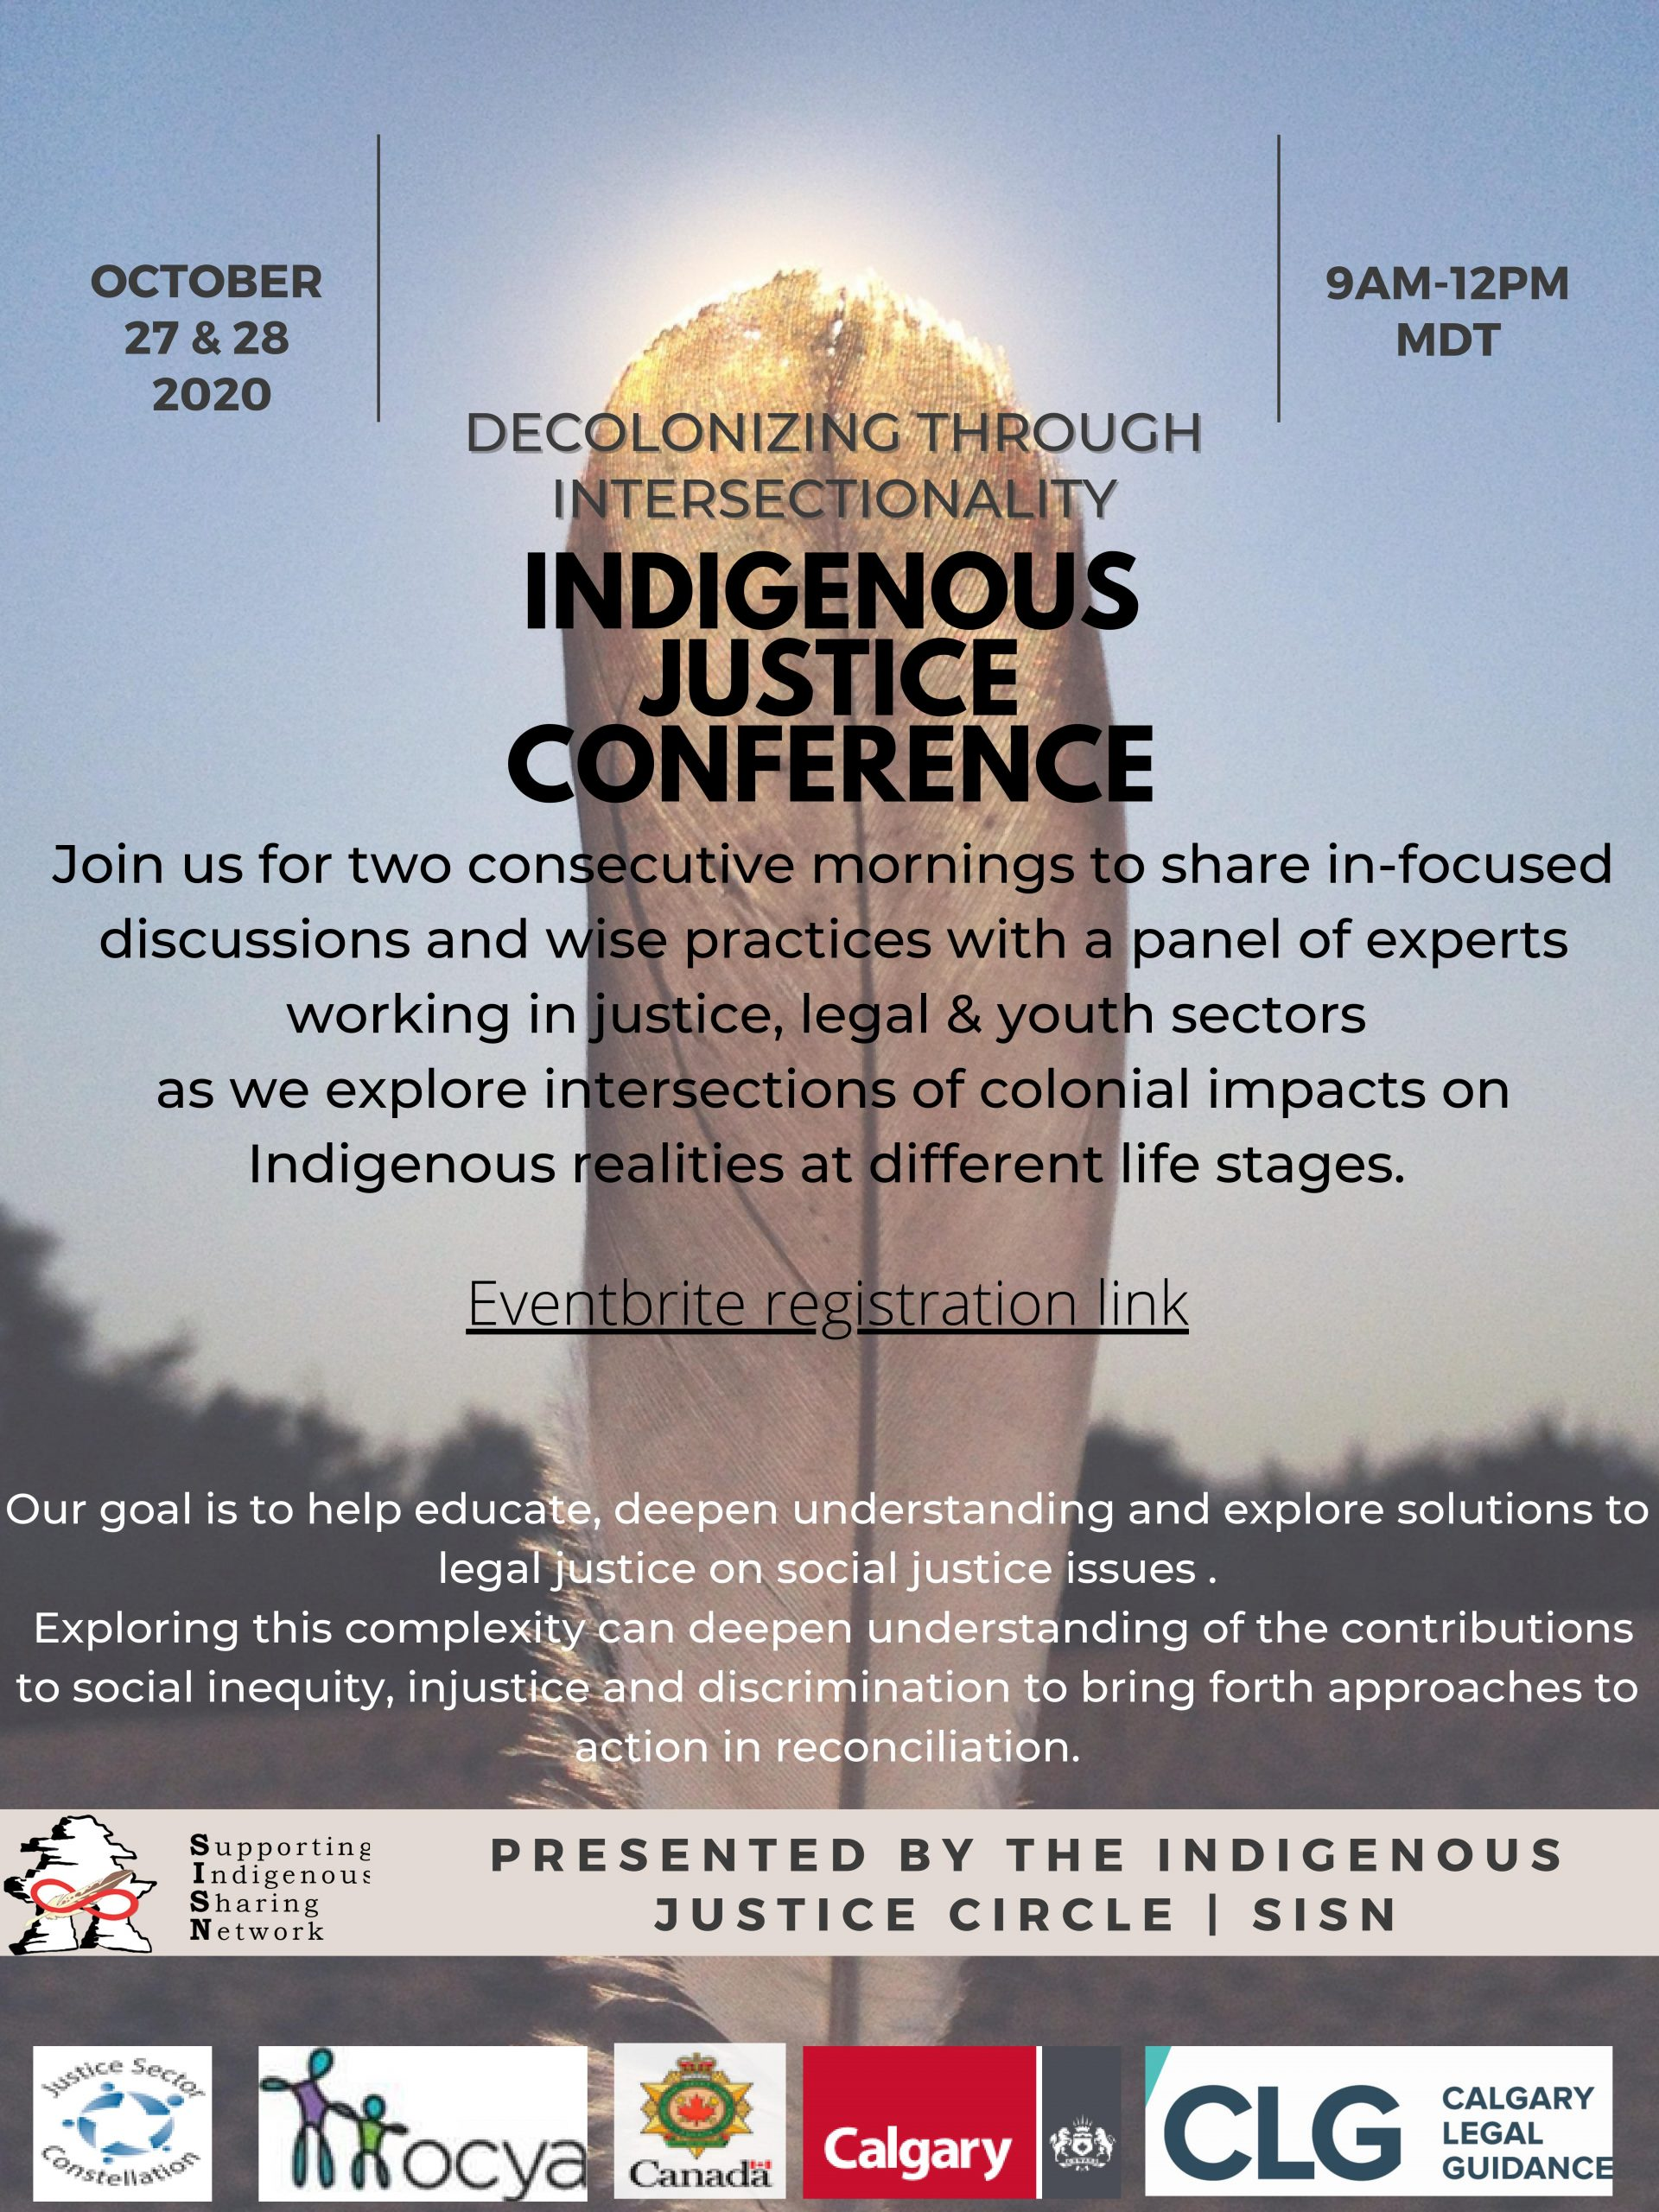 Indigenous Justice Conference | October 27-28, 2020